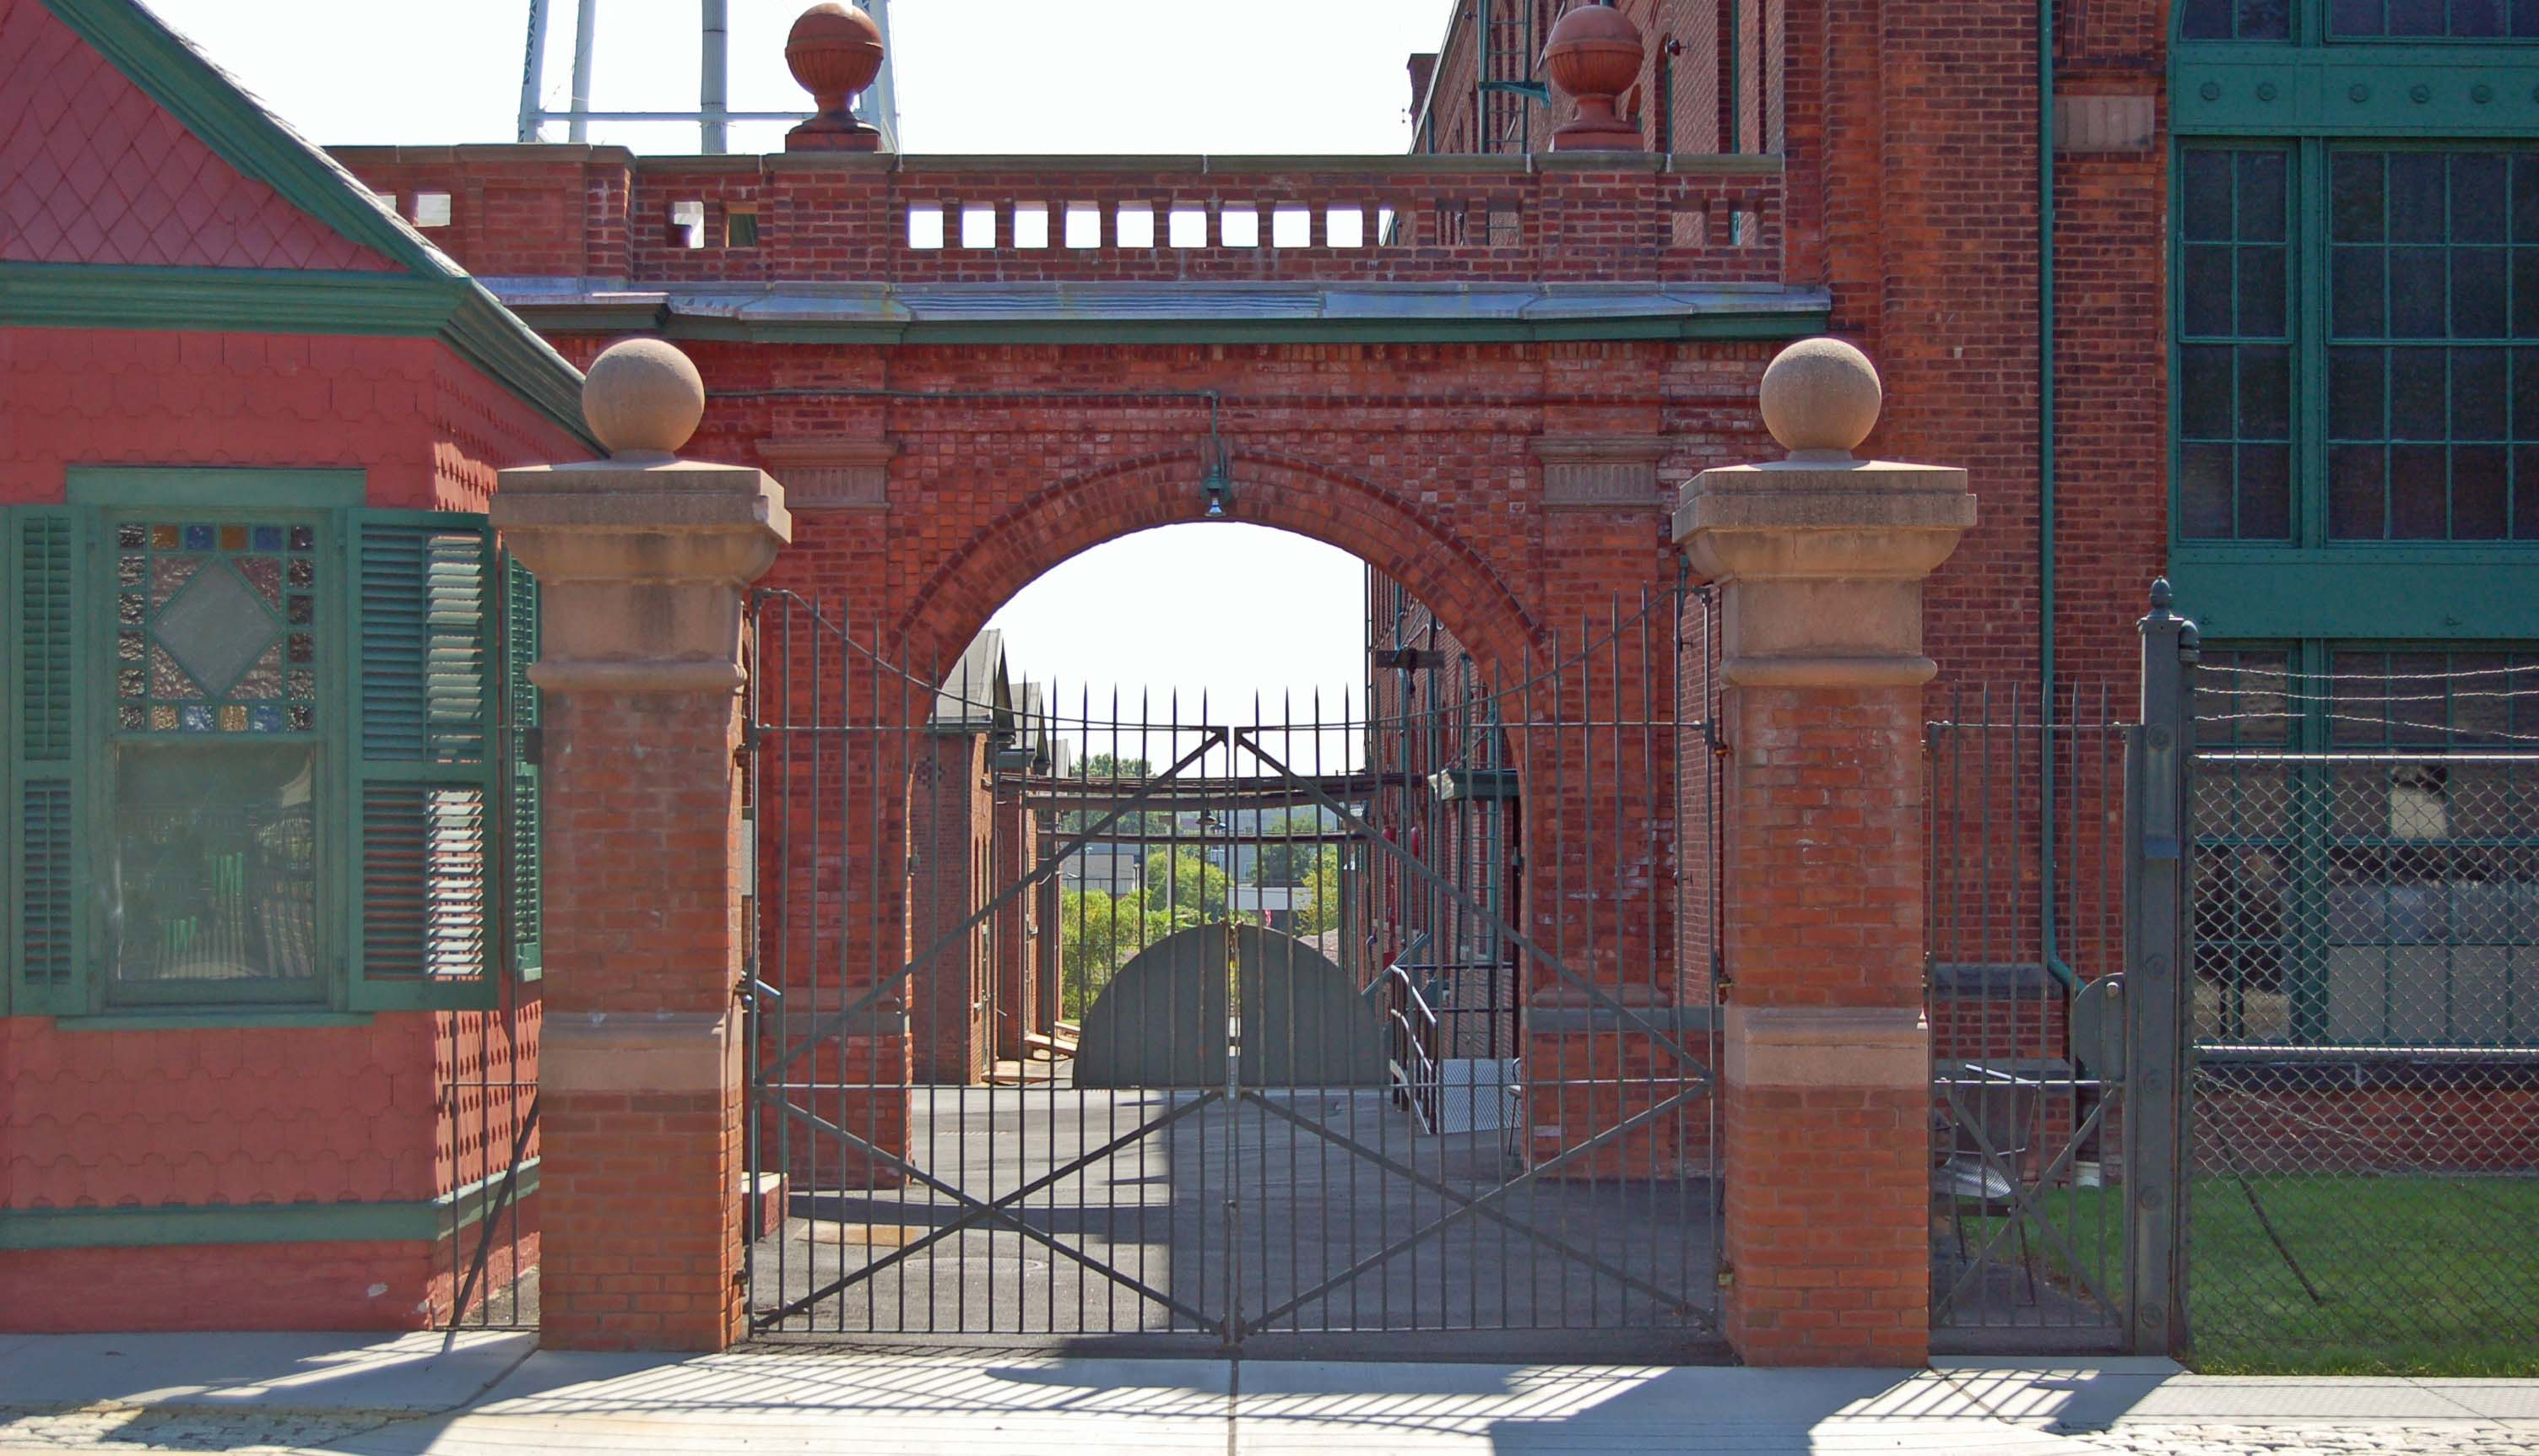 Front Gate of Thomas Edison National Historical Park